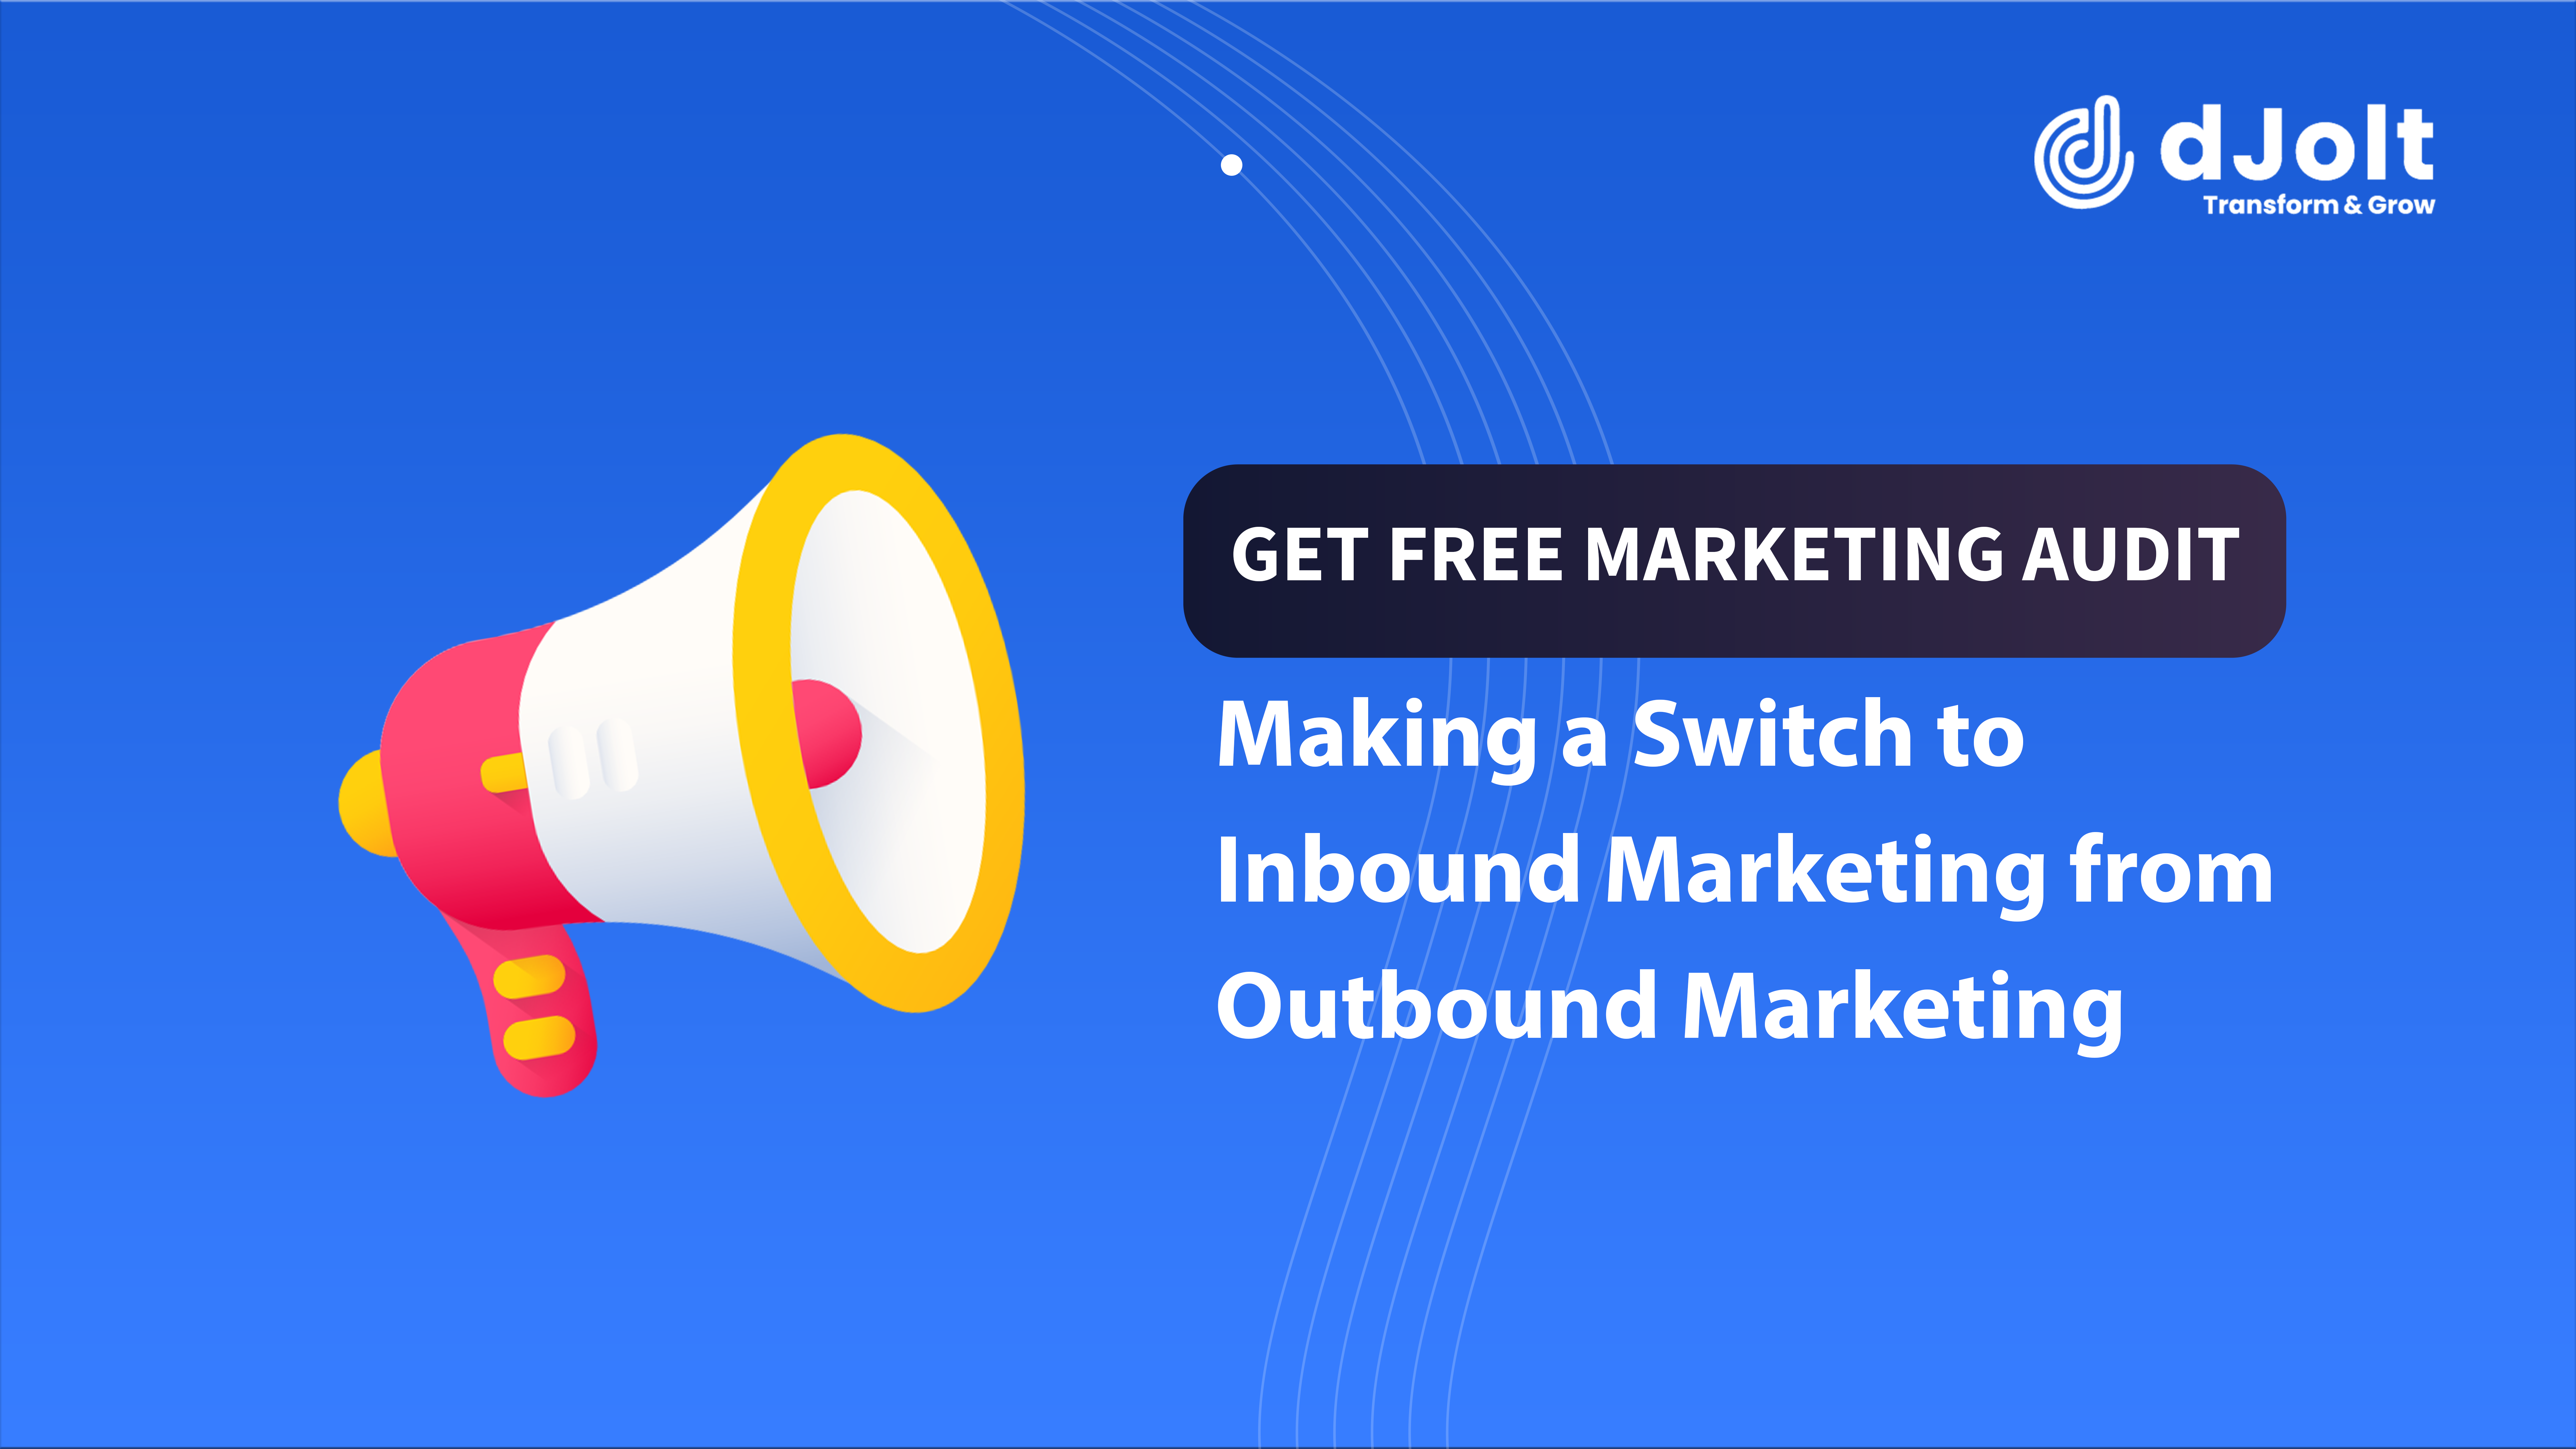 Switching from Outbound marketing to inbound marketing